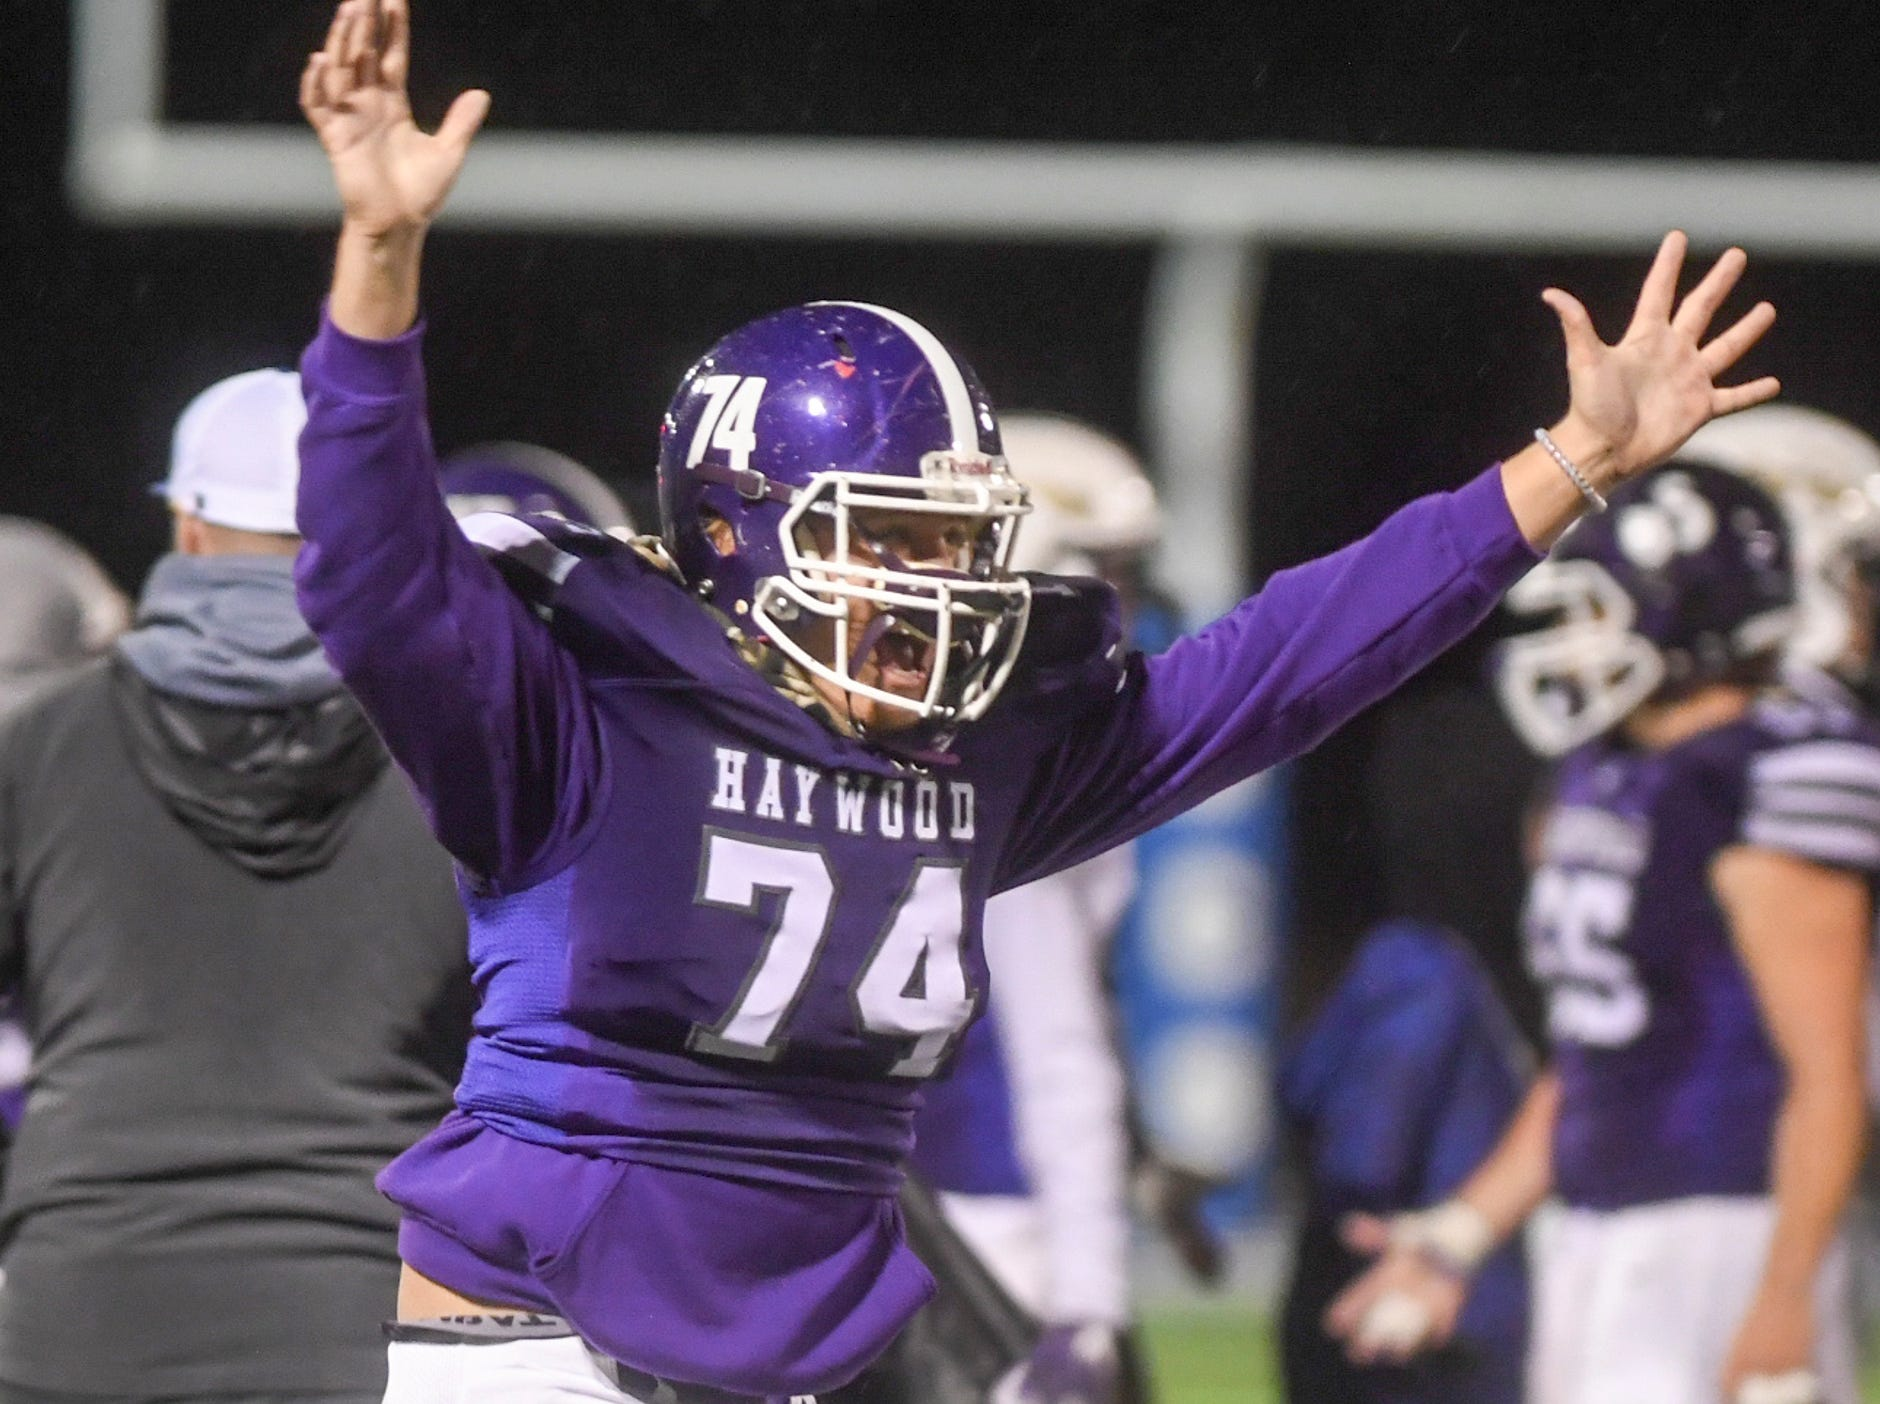 Haywood's Jackson Robinson celebrates victory after Haywood defeated Springfield, 49-14, during their Class 4A semifinal game, Friday, November 23.